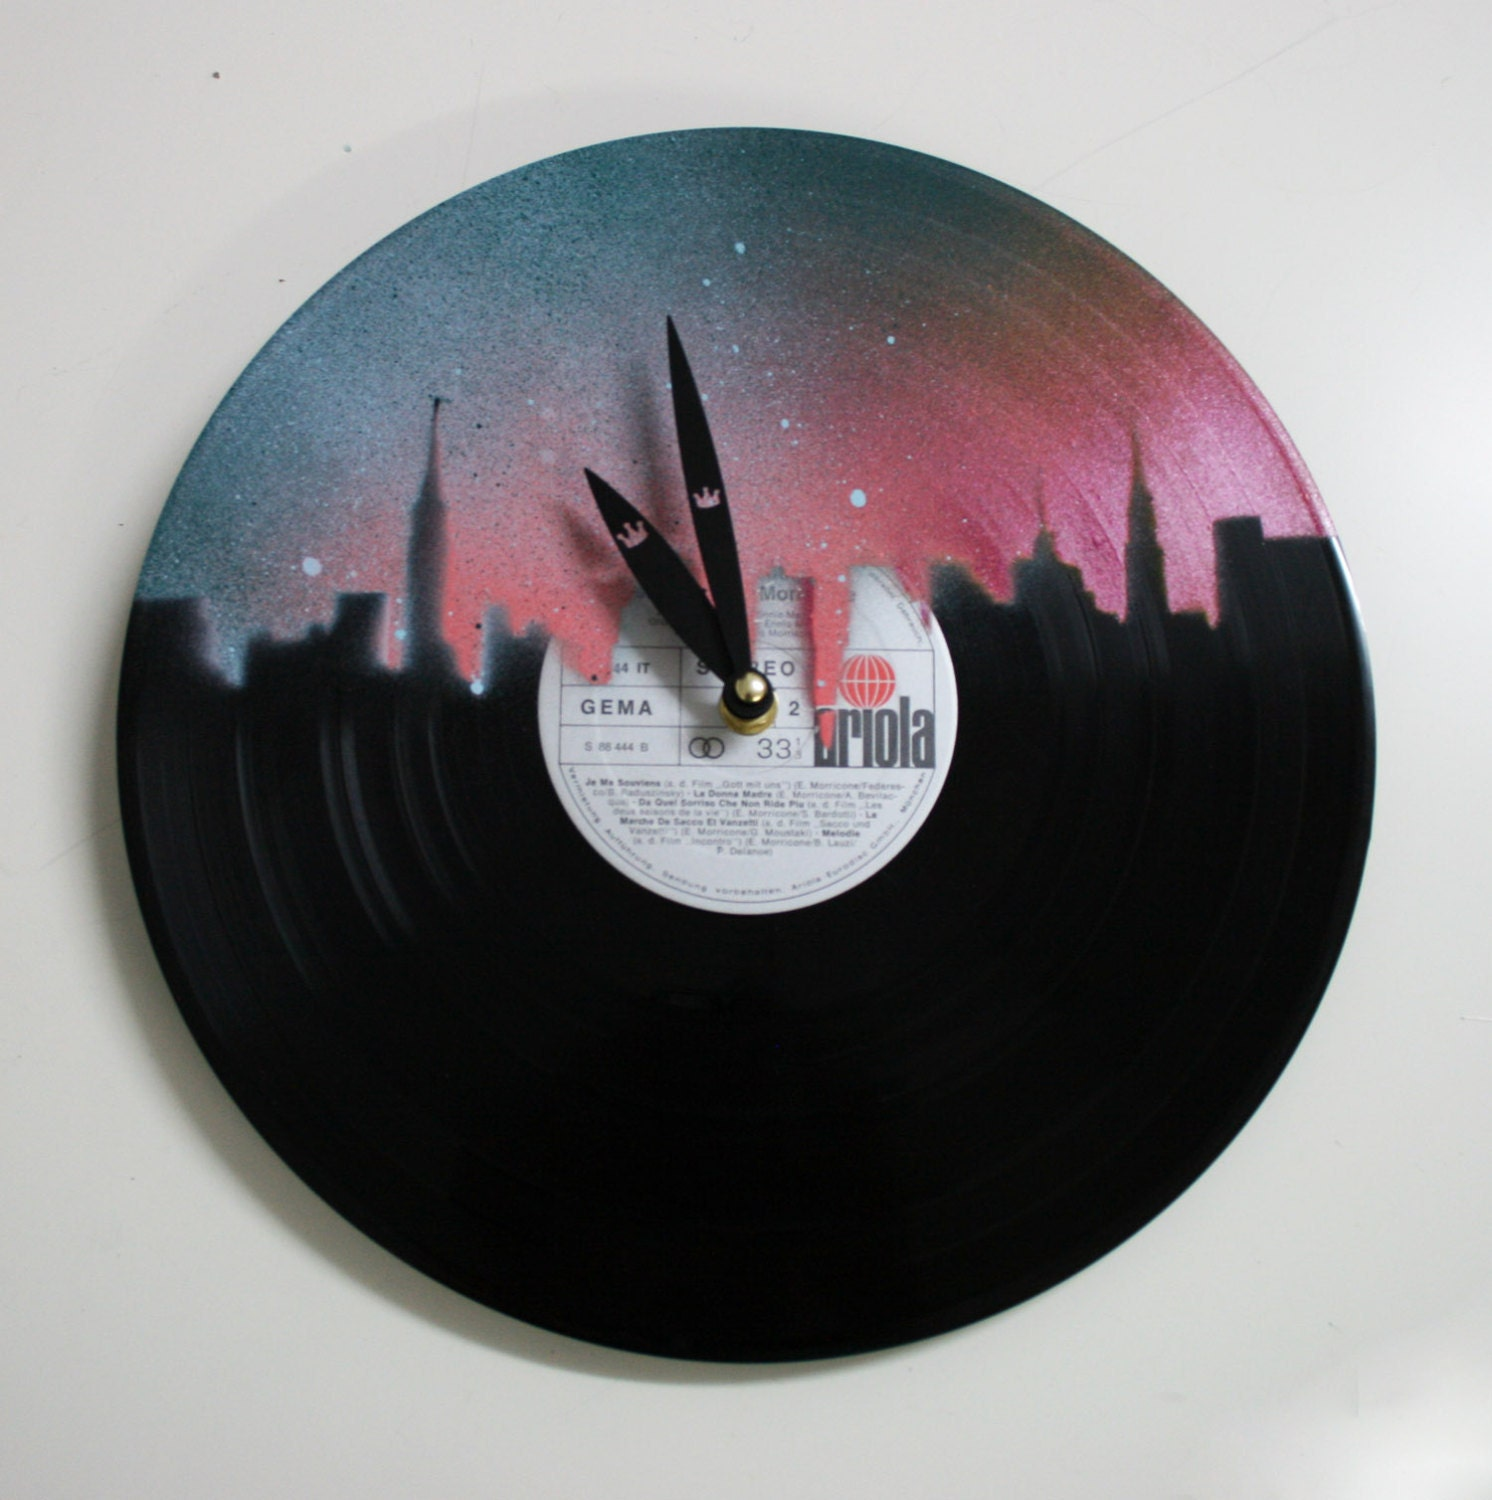 New Arrival Vinyl Records SoundStageDirect - oukas info